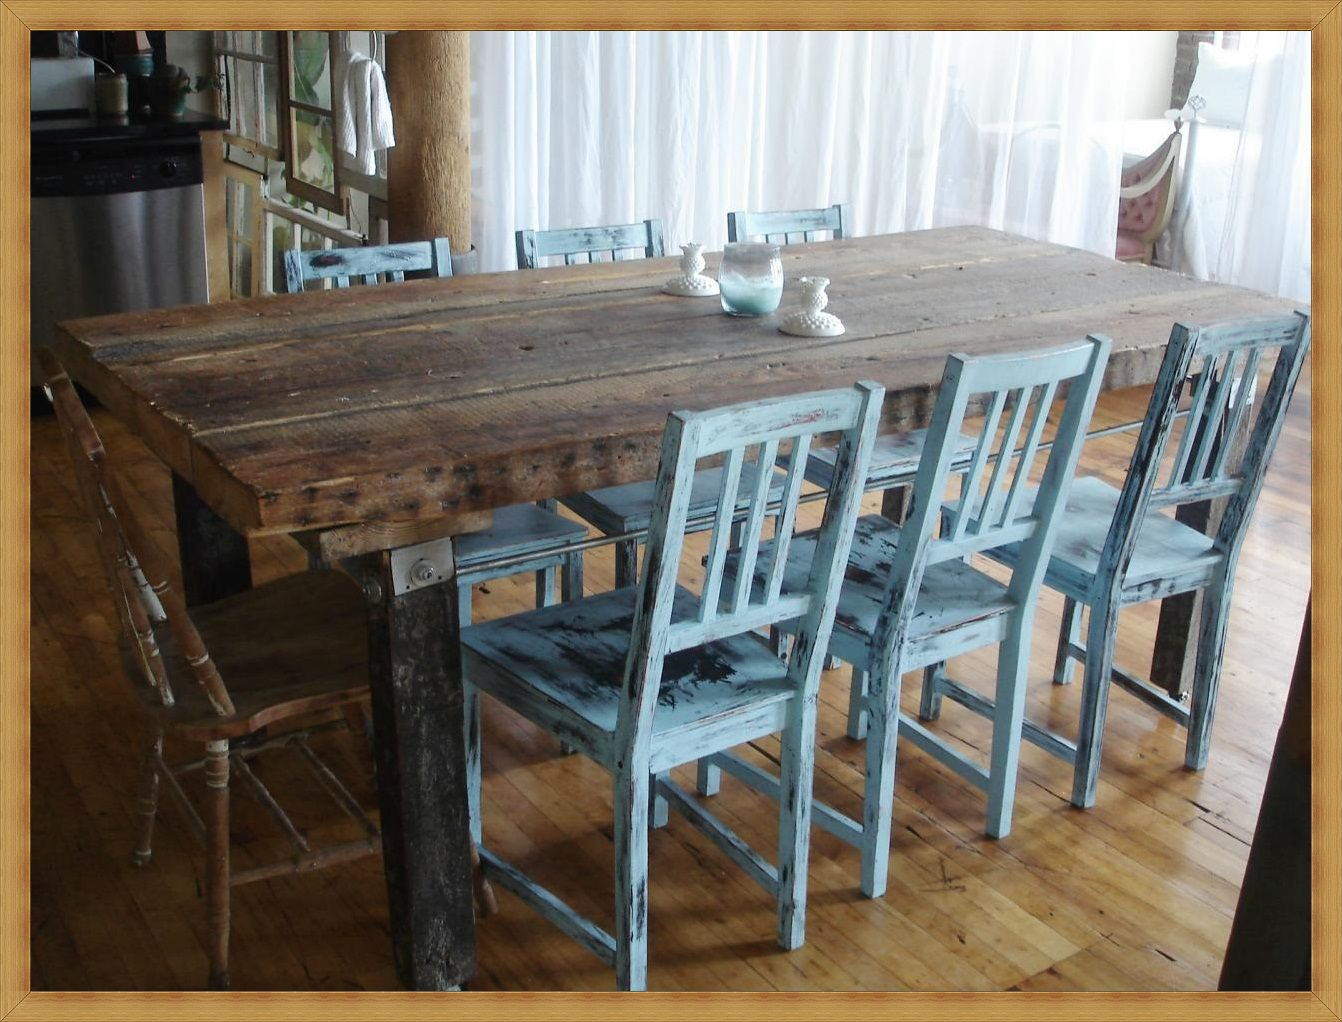 Kitchen and Table Chair Rustic Chic Dining Table Large Kitchen Table ...